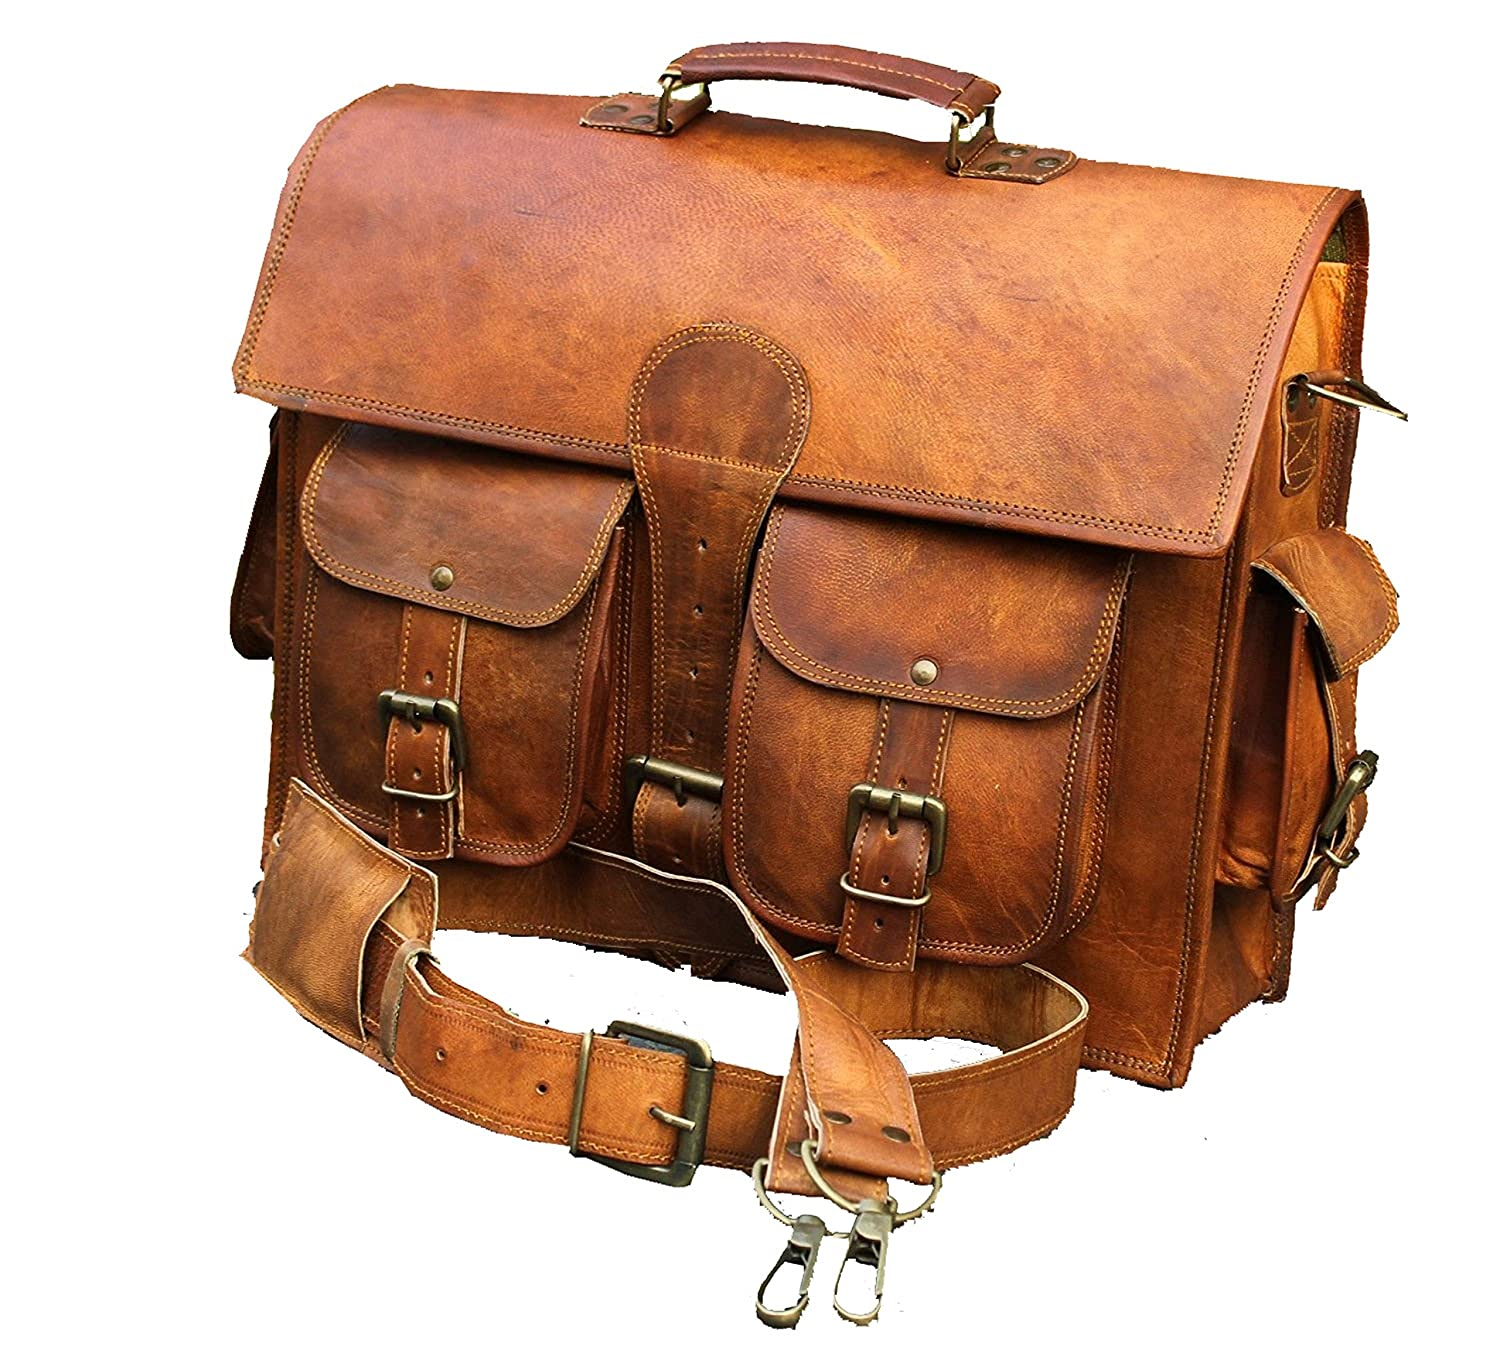 Stellar Styles Genuine Leather Laptop computer School college messenger briefcase backpack macbook tour travel holiday bag